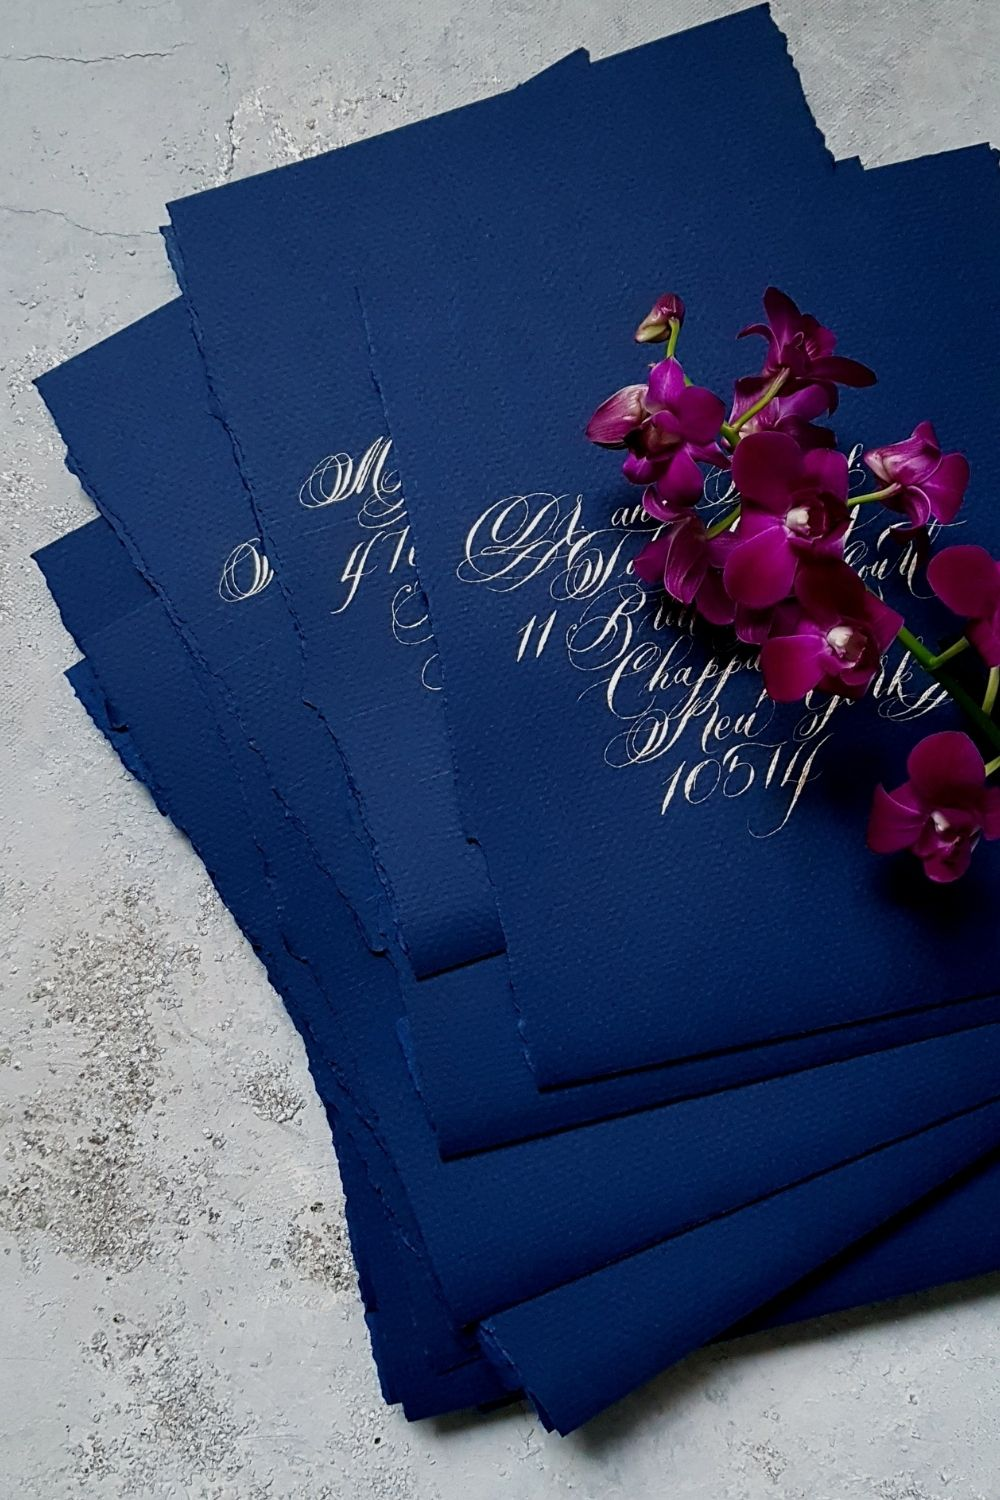 Luxury large hand made envelopes with torn edges and pale gold calligraphy for a navy blue and gold wedding invitations suite